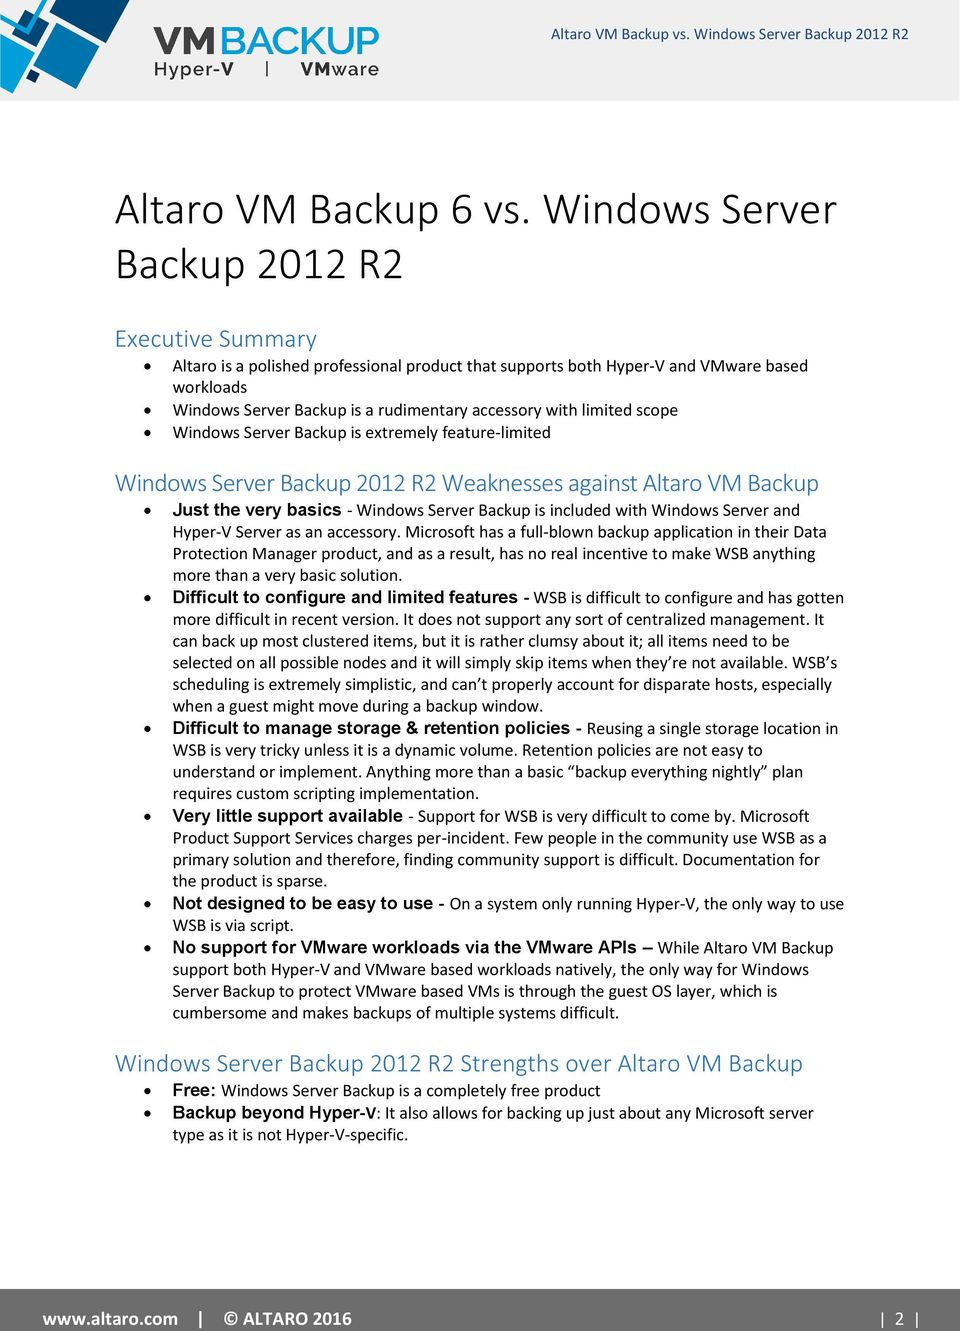 free windows server backup